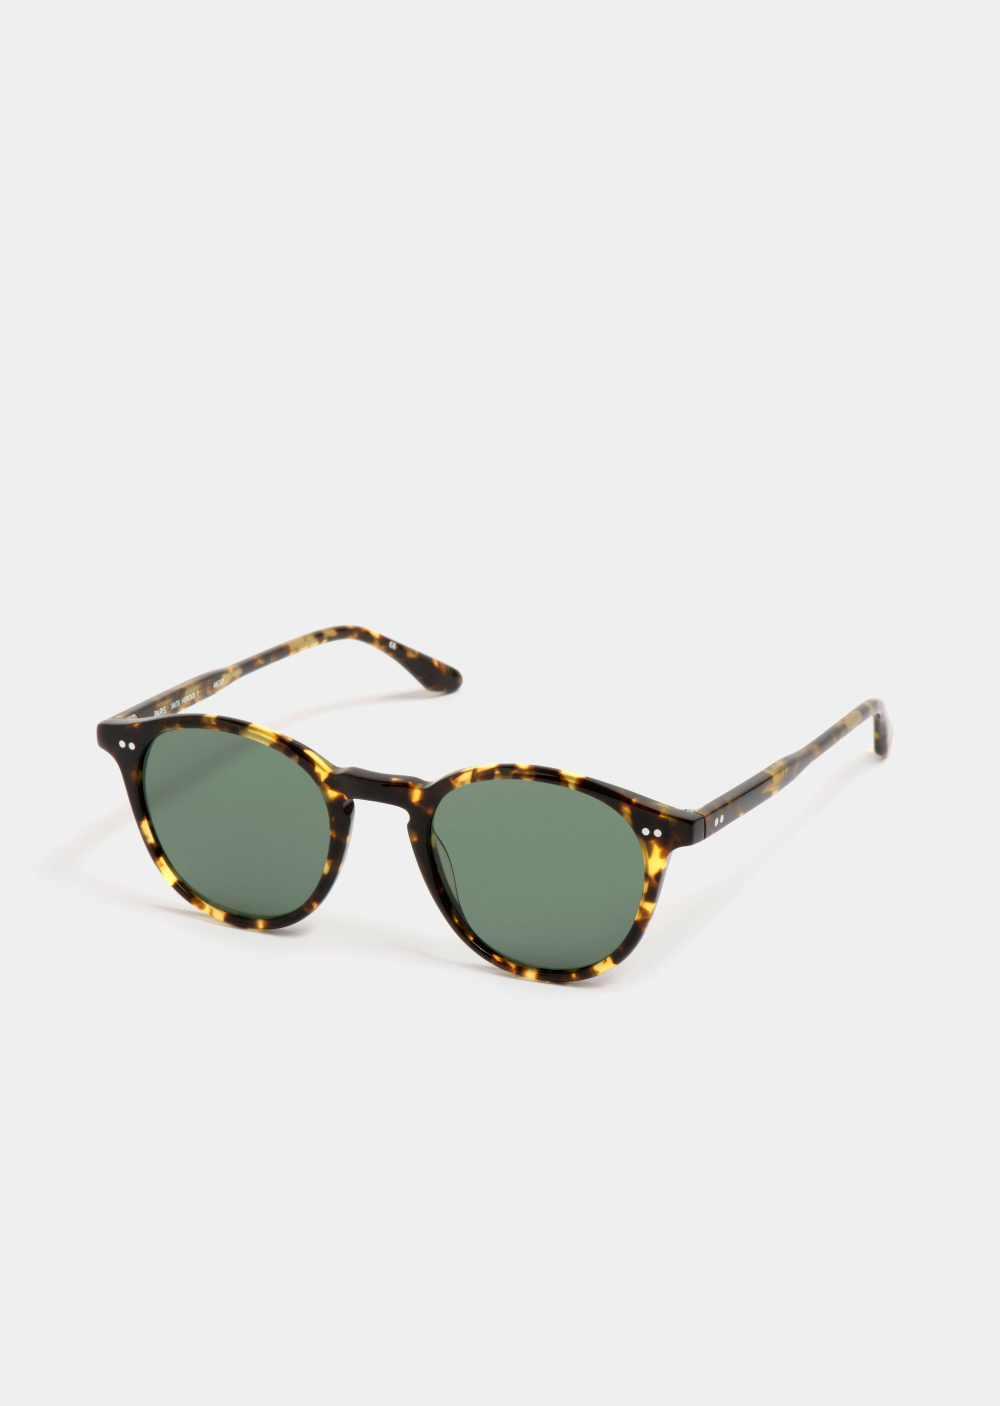 PETER AND MAY -  - LT4 Herold RX tortoise